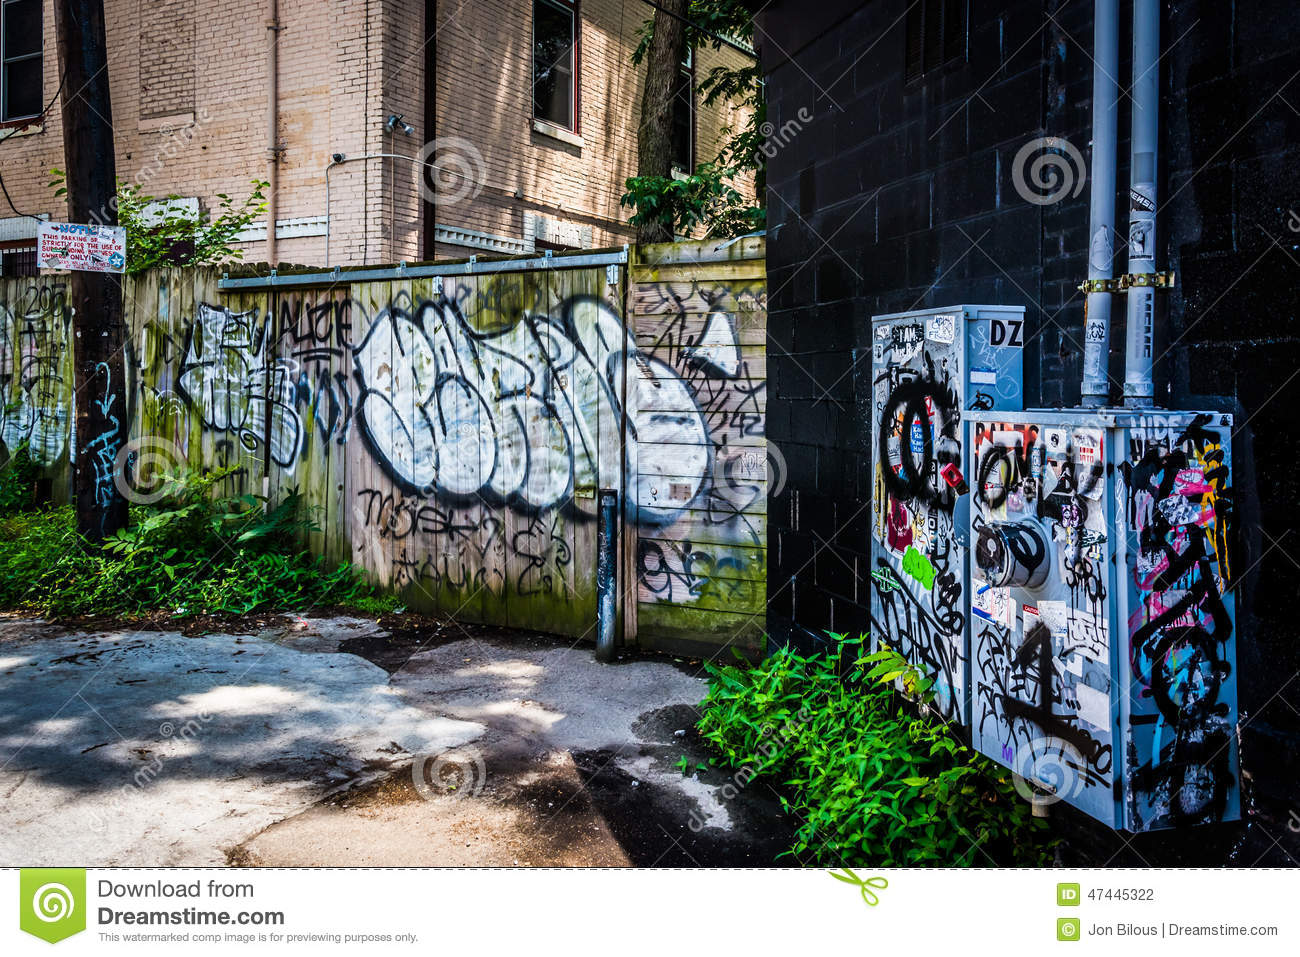 Graffiti wall atlanta - Graffiti In An Alley In Little Five Points Atlanta Georgia Stock Photography